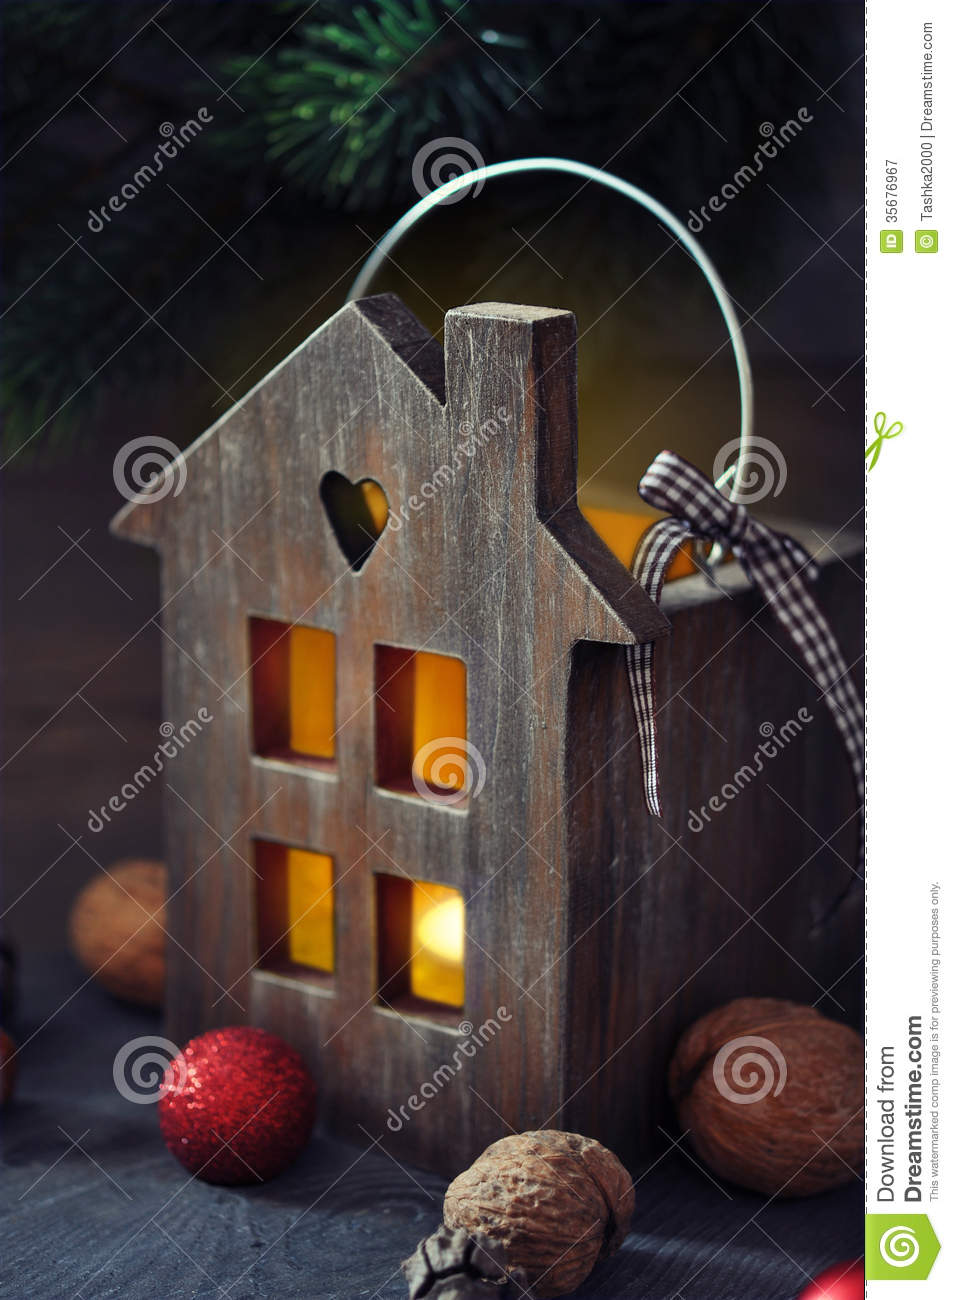 christmas-lantern-shape-small-wooden-house-candle-inside-35676967 House Plans With Inside on design with inside, house parts names inside, log homes with inside, house blueprints with dimensions, house room size dimensions,